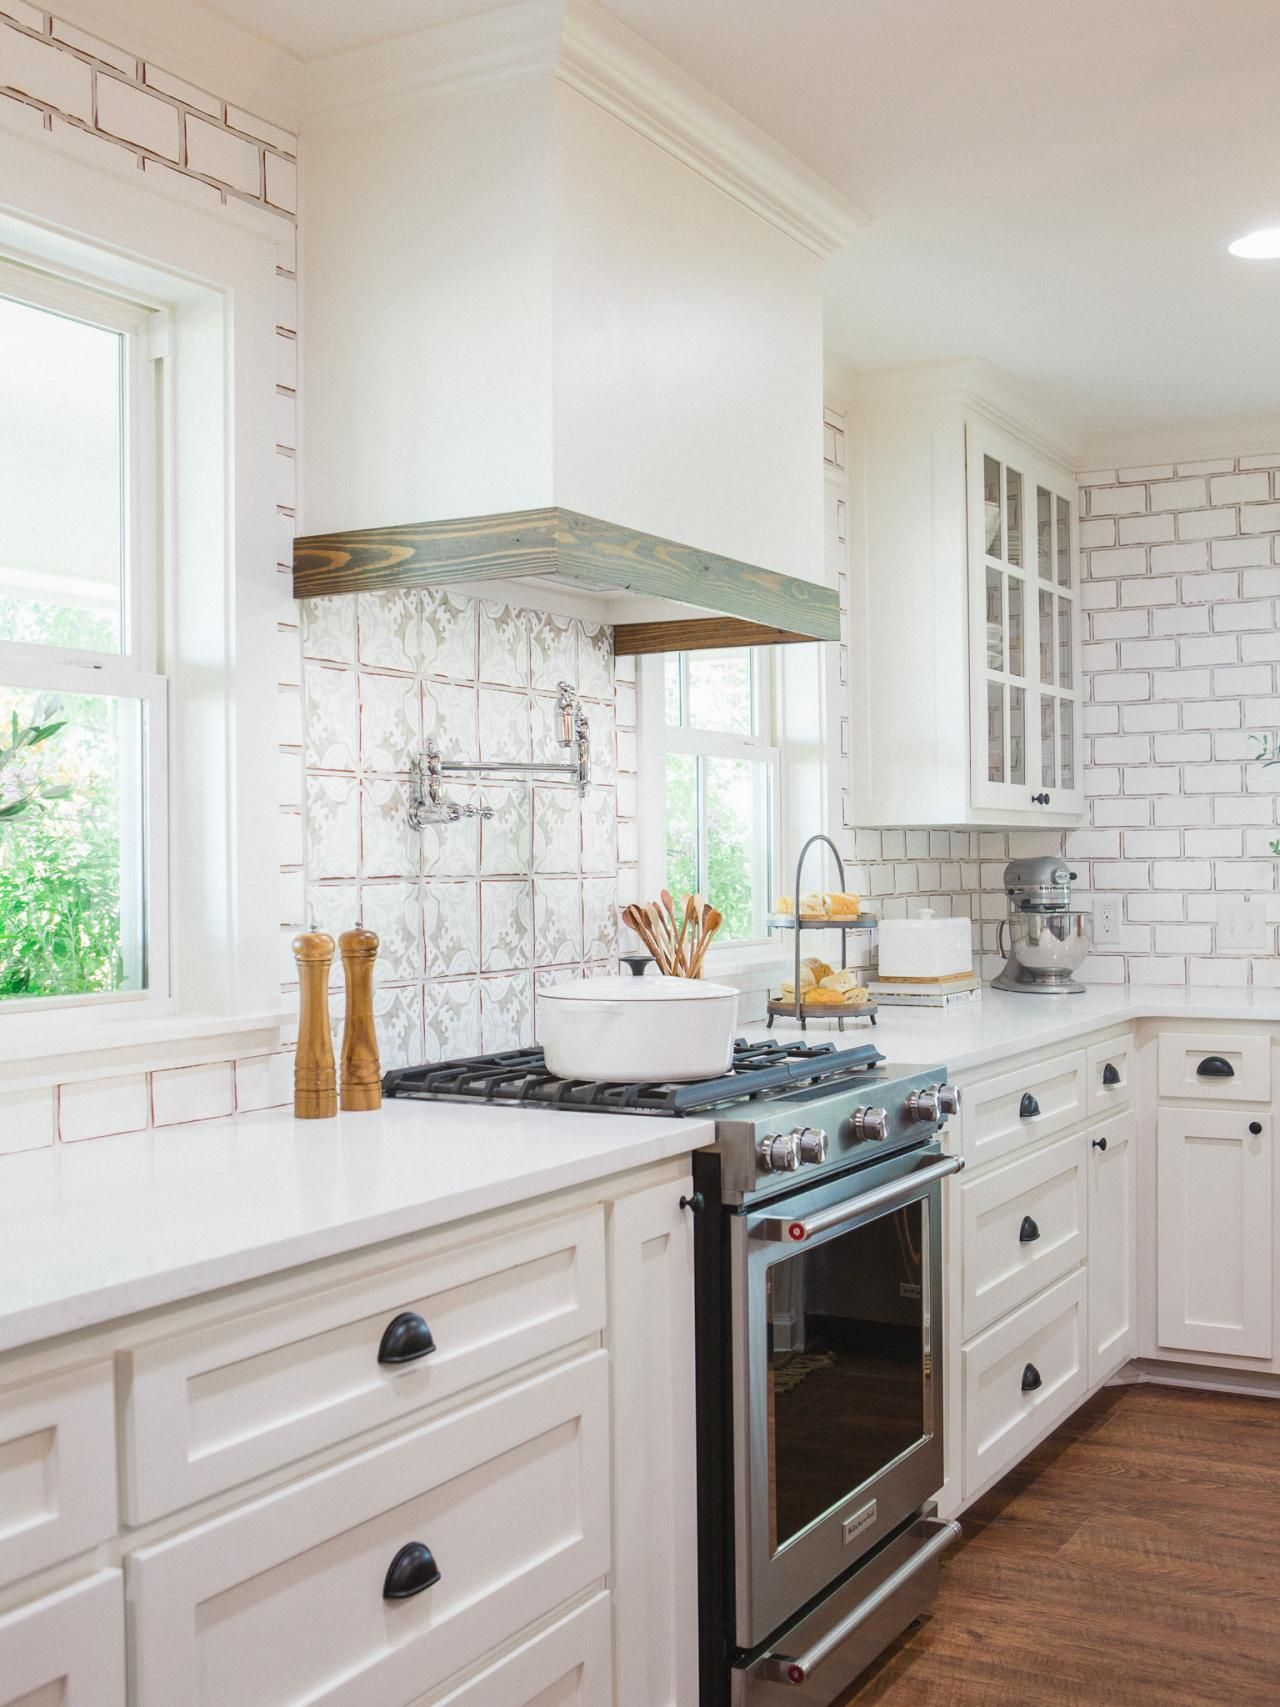 Photos Hgtv S Fixer Upper With Chip And Joanna Gaines Hgtv European Farmhouse Kitchen French Country Kitchen Country Kitchen Designs